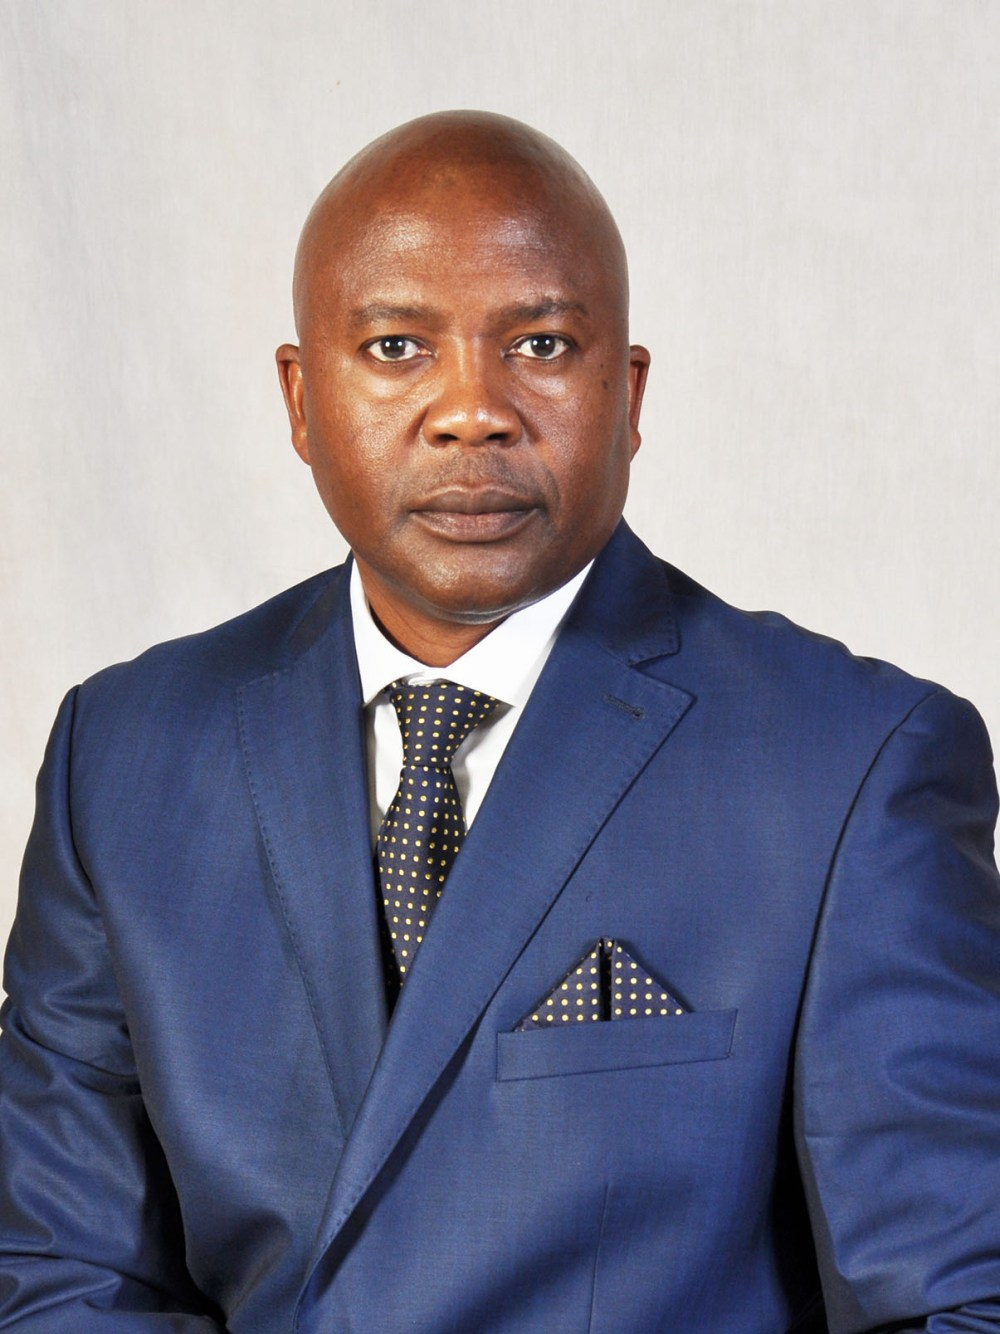 Defence ministry's high budget allocation justifiable - Vilho